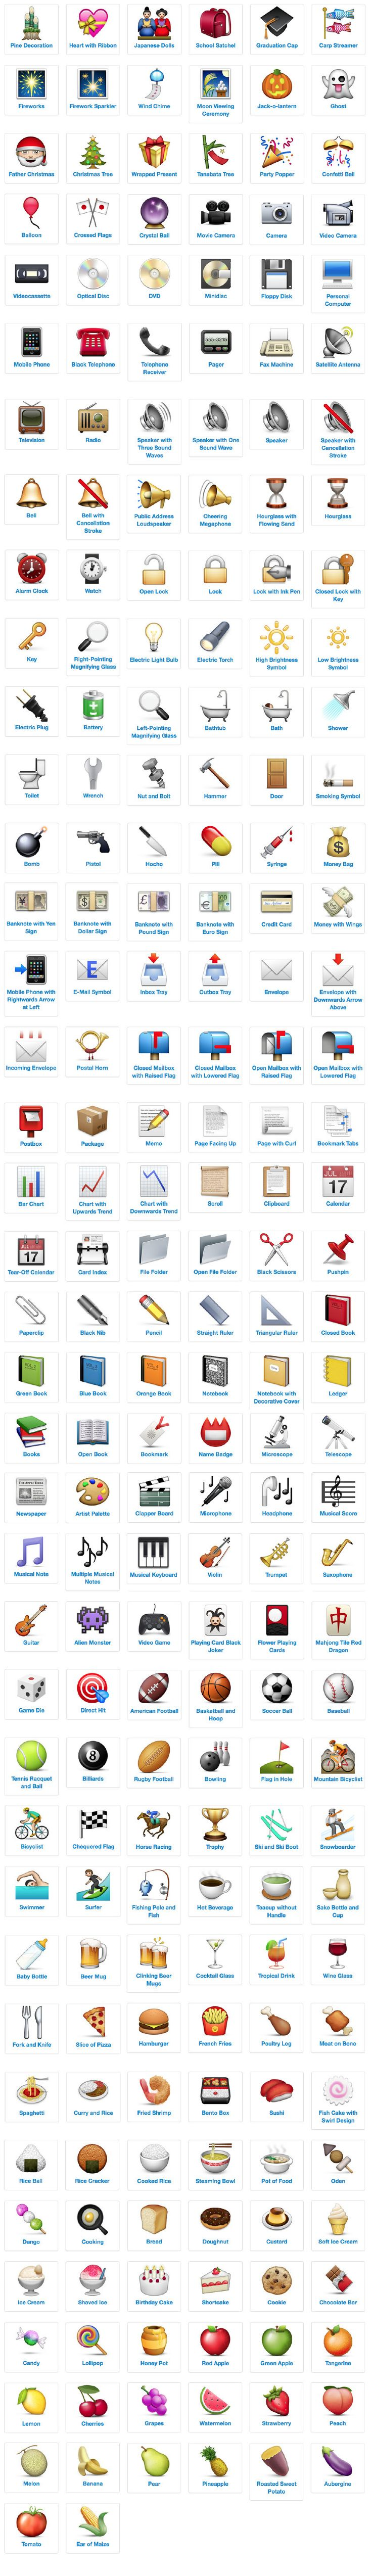 emoji icon list objects with meanings and definitions A